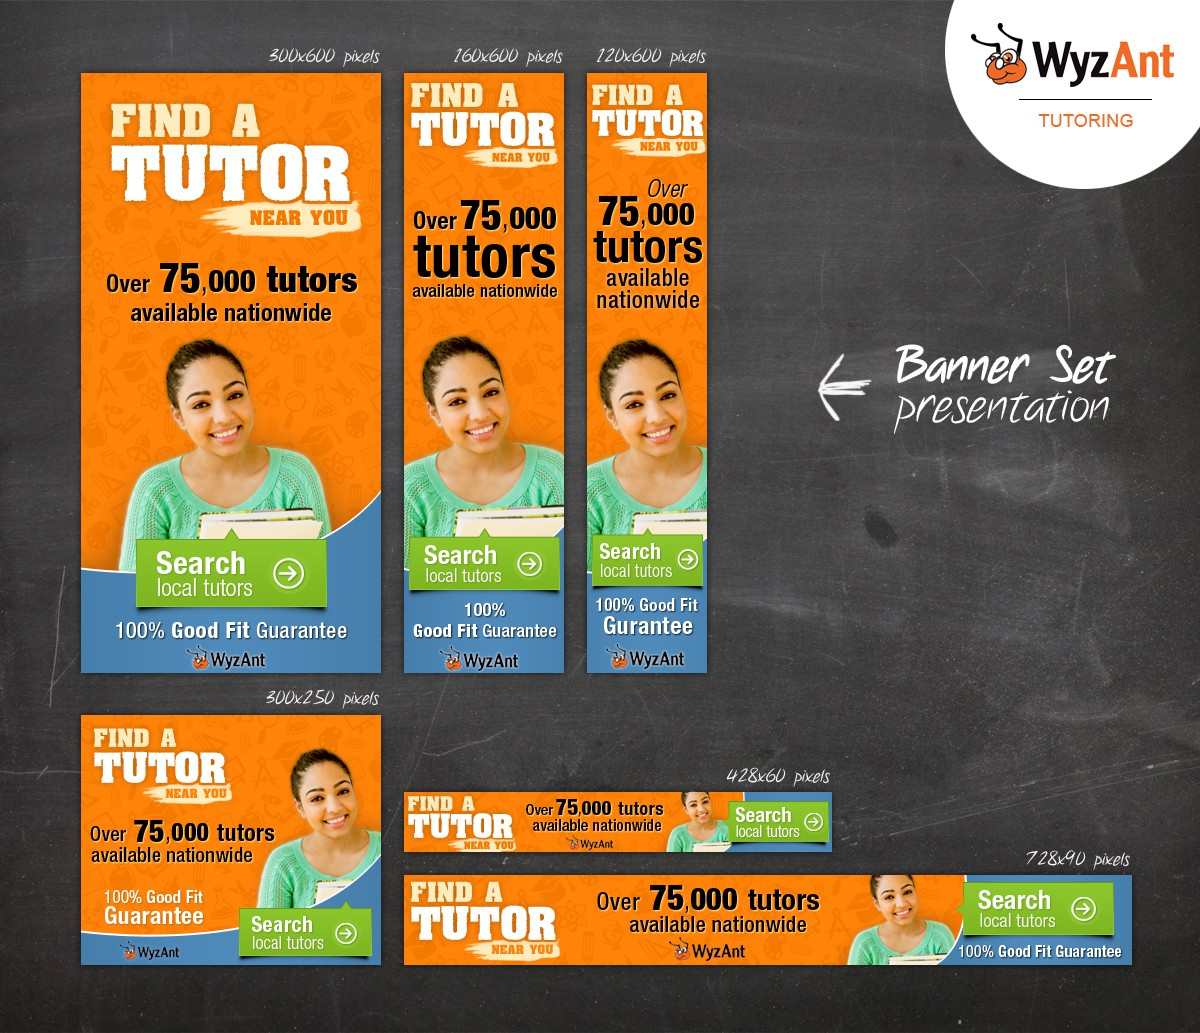 Create banner ads targeted to parents & students for WyzAnt Tutoring